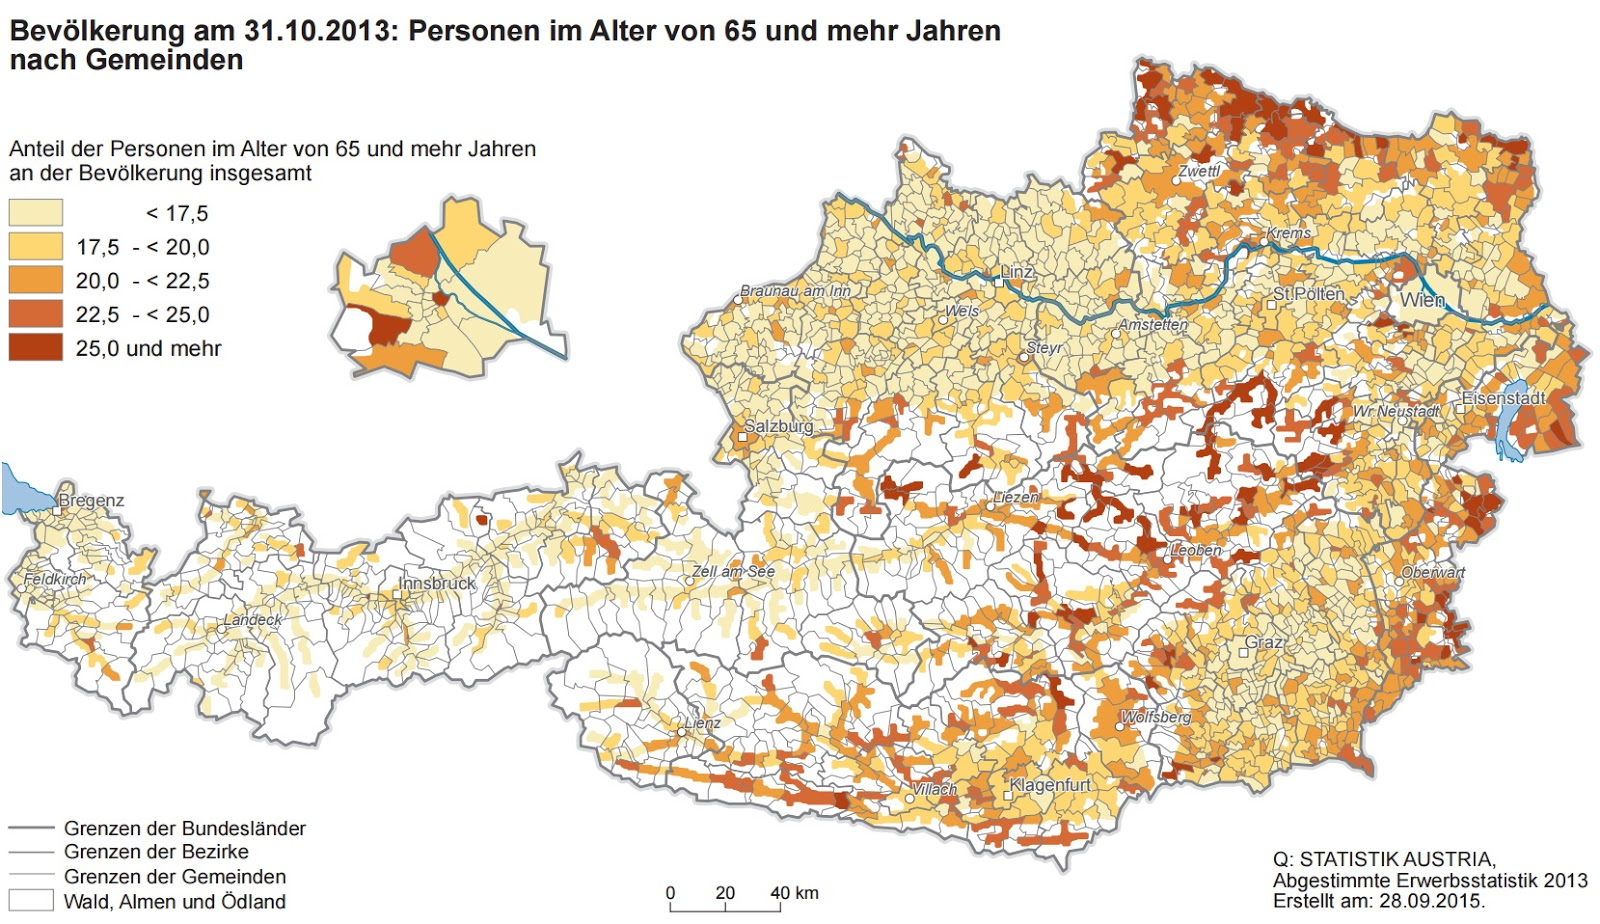 Austria: Proportion of the population older than 65 years